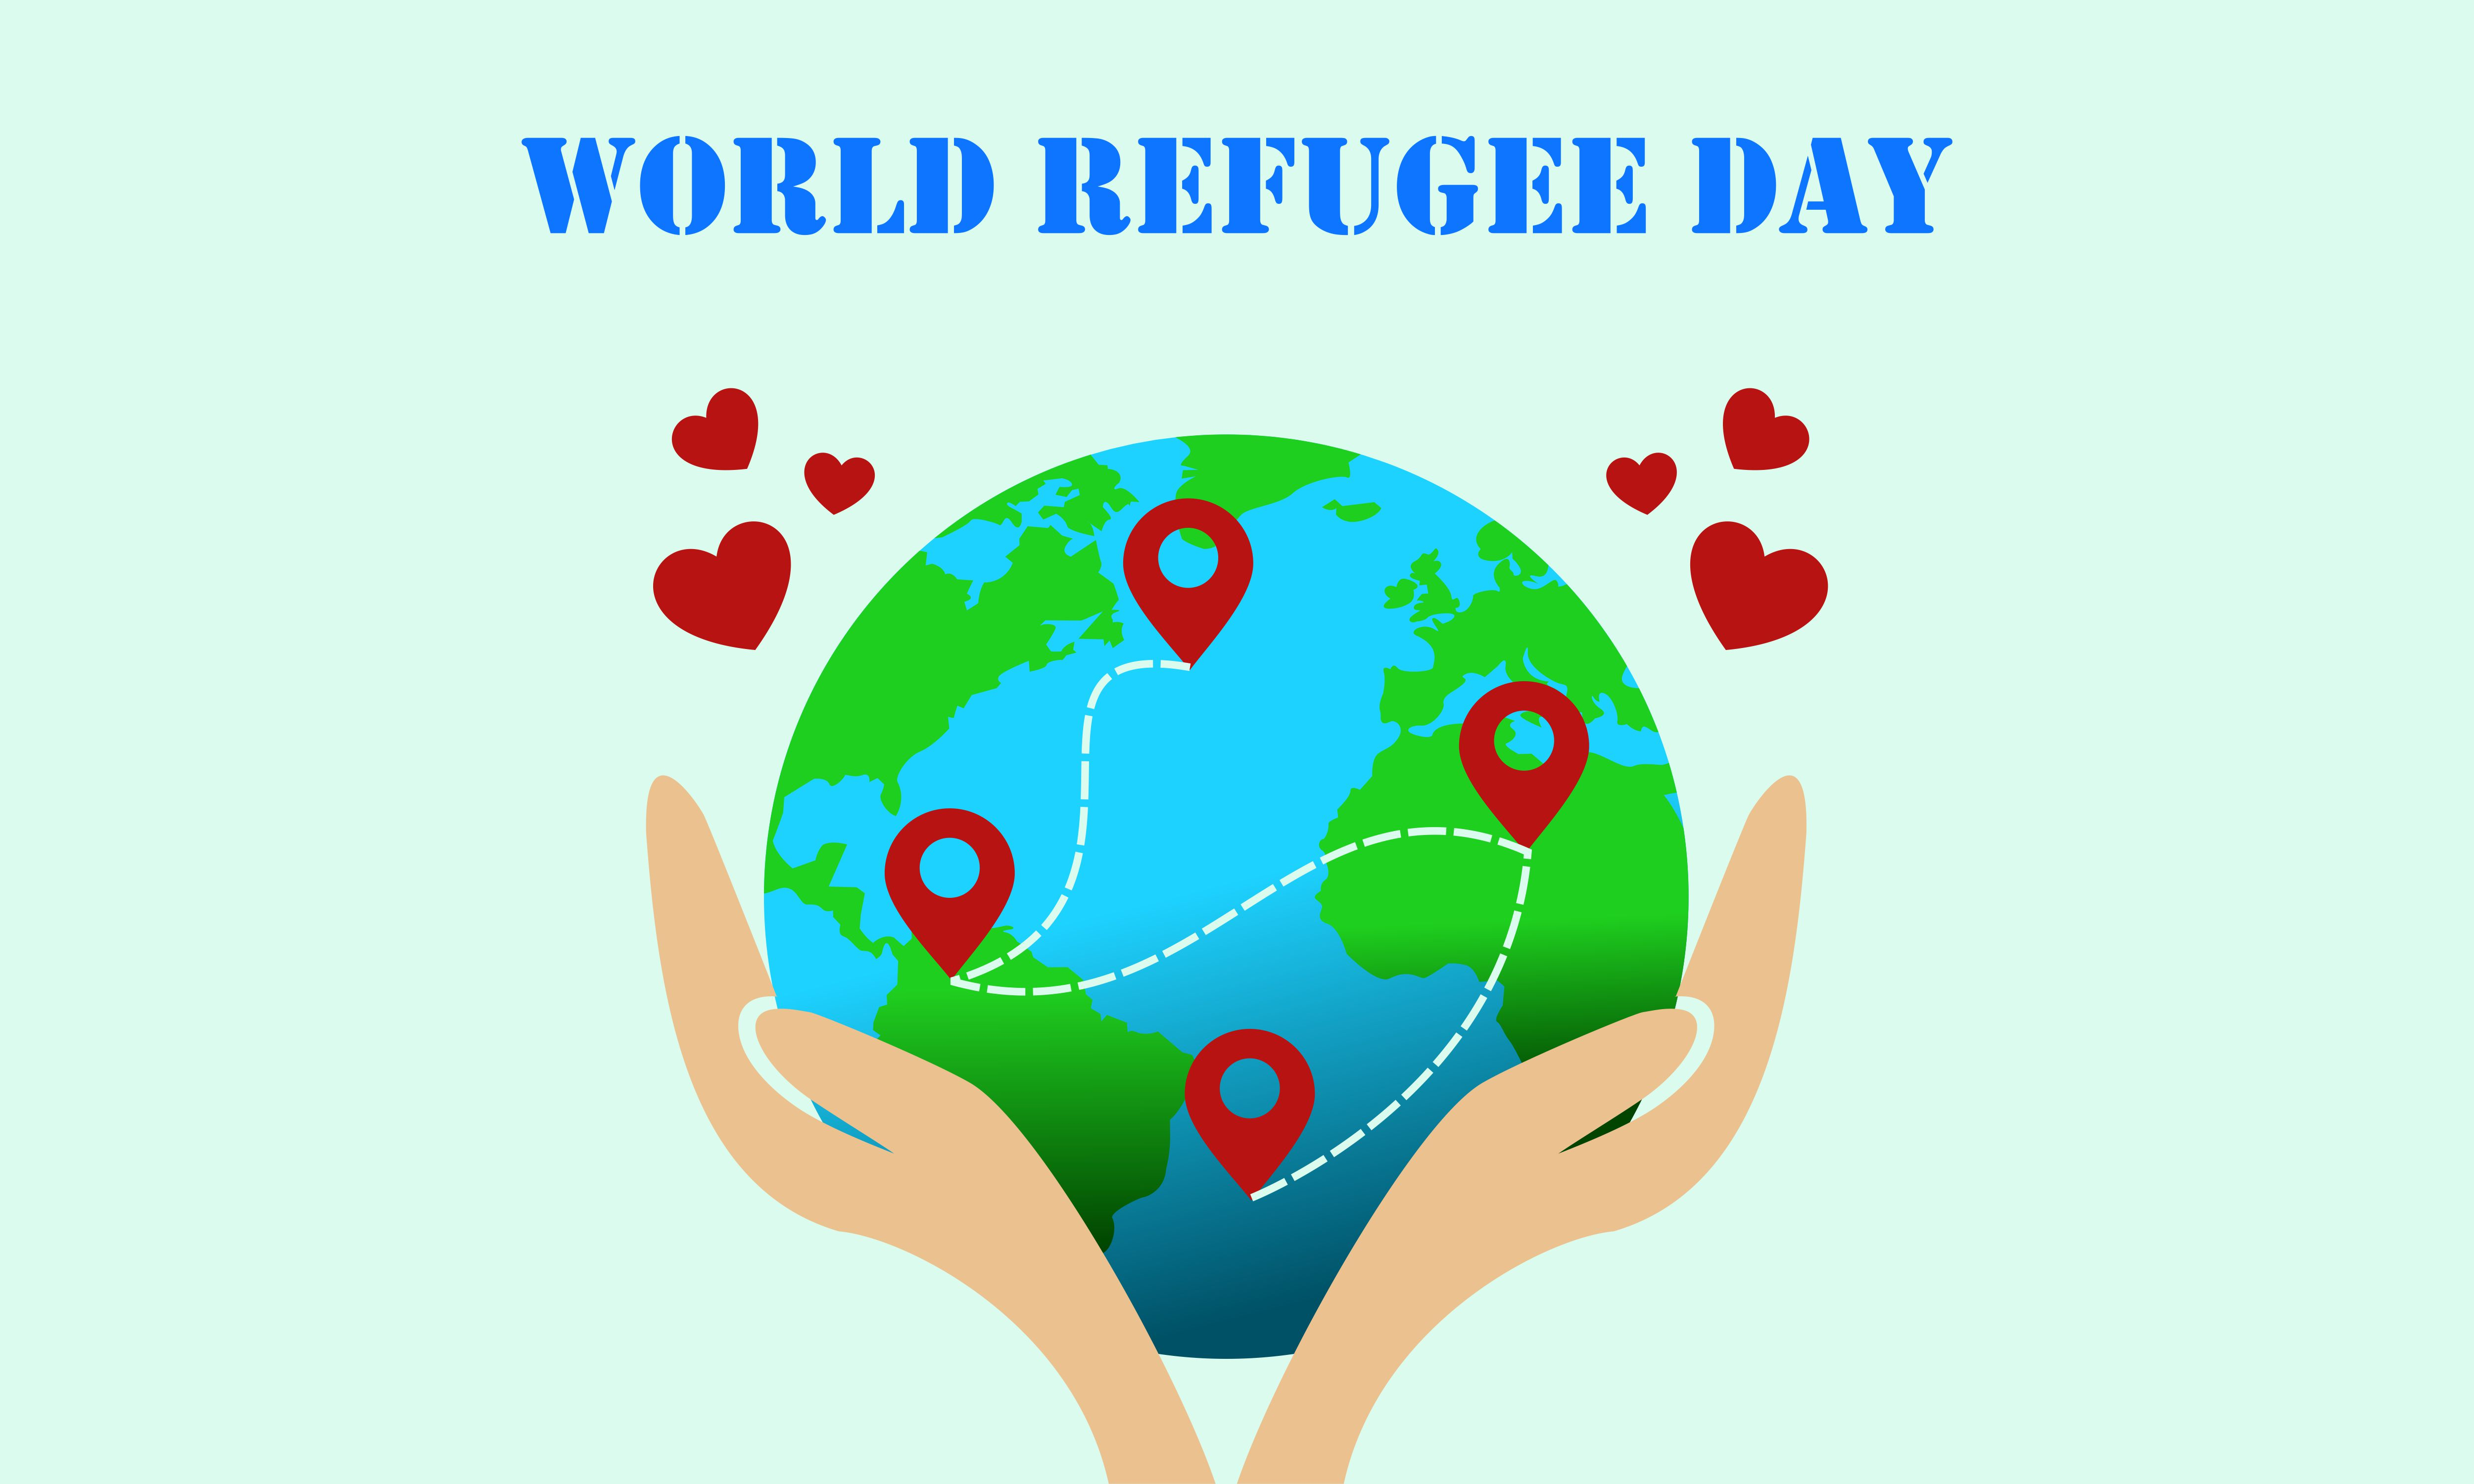 Download Free World Refugee Day 20 June Human Hands Graphic By 2qnah for Cricut Explore, Silhouette and other cutting machines.